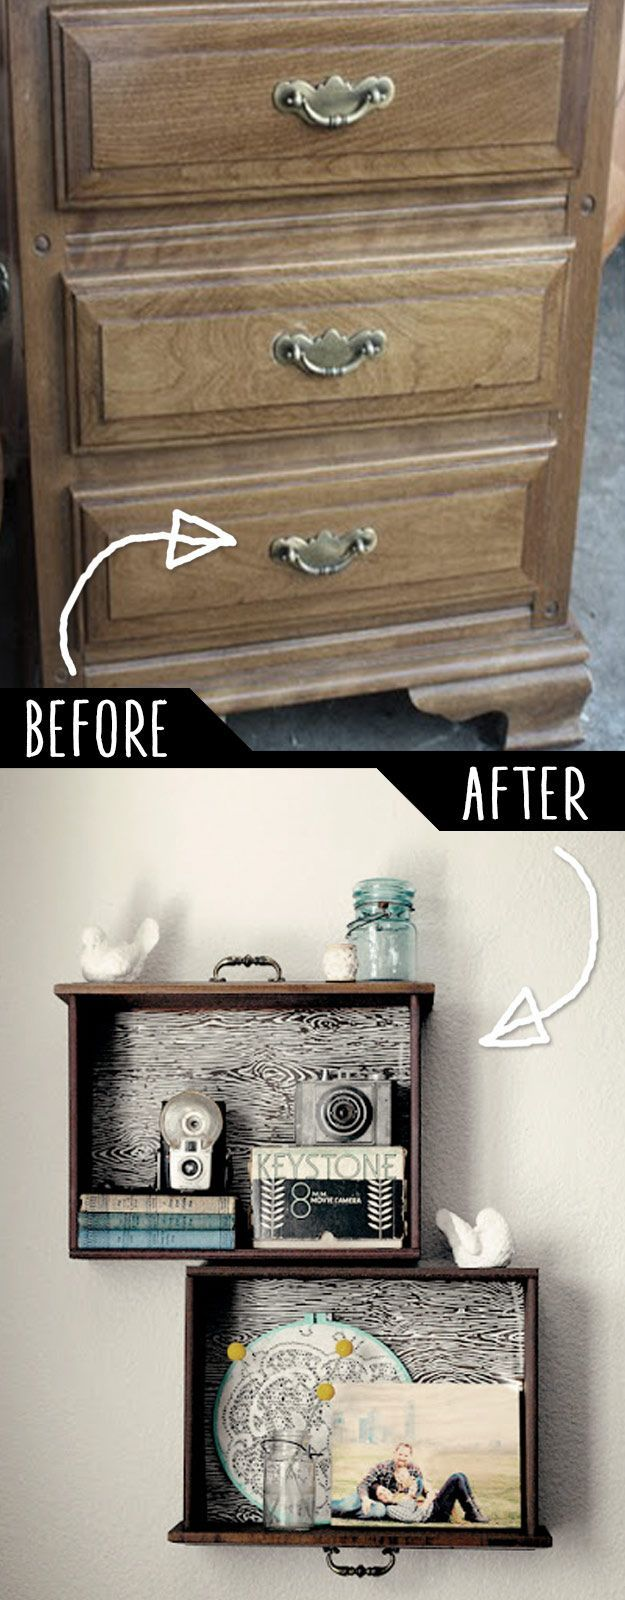 Do It Yourself Home Decorating Ideas: 39 Clever DIY Furniture Hacks